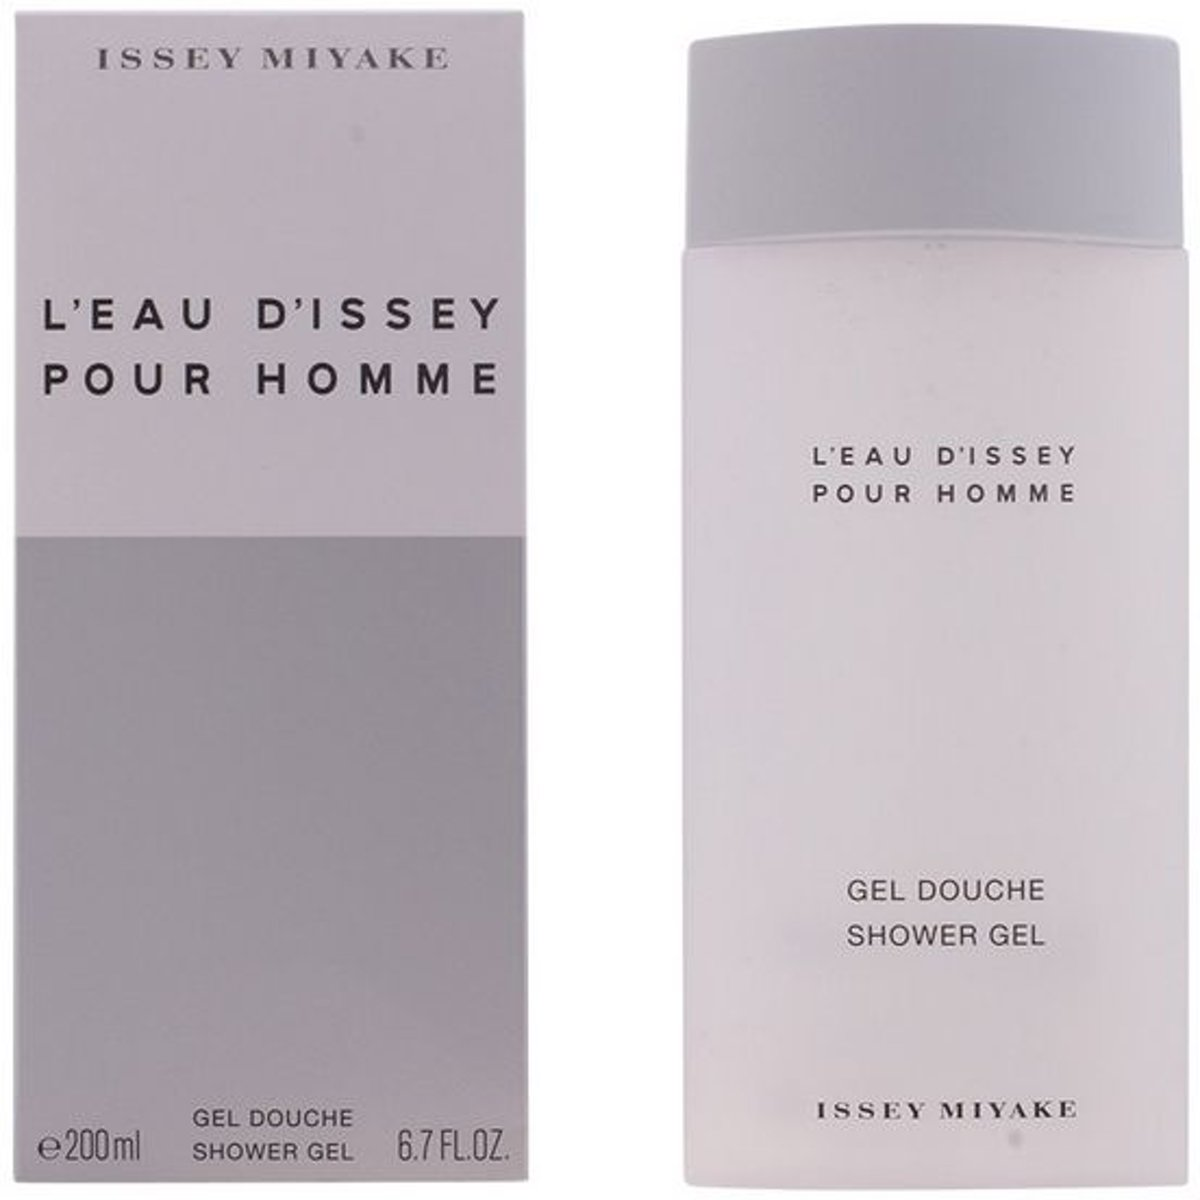 5948010391 bol.com | Issey Miyake L'Eau d'Issey pour Homme - 200 ml - Douchegel